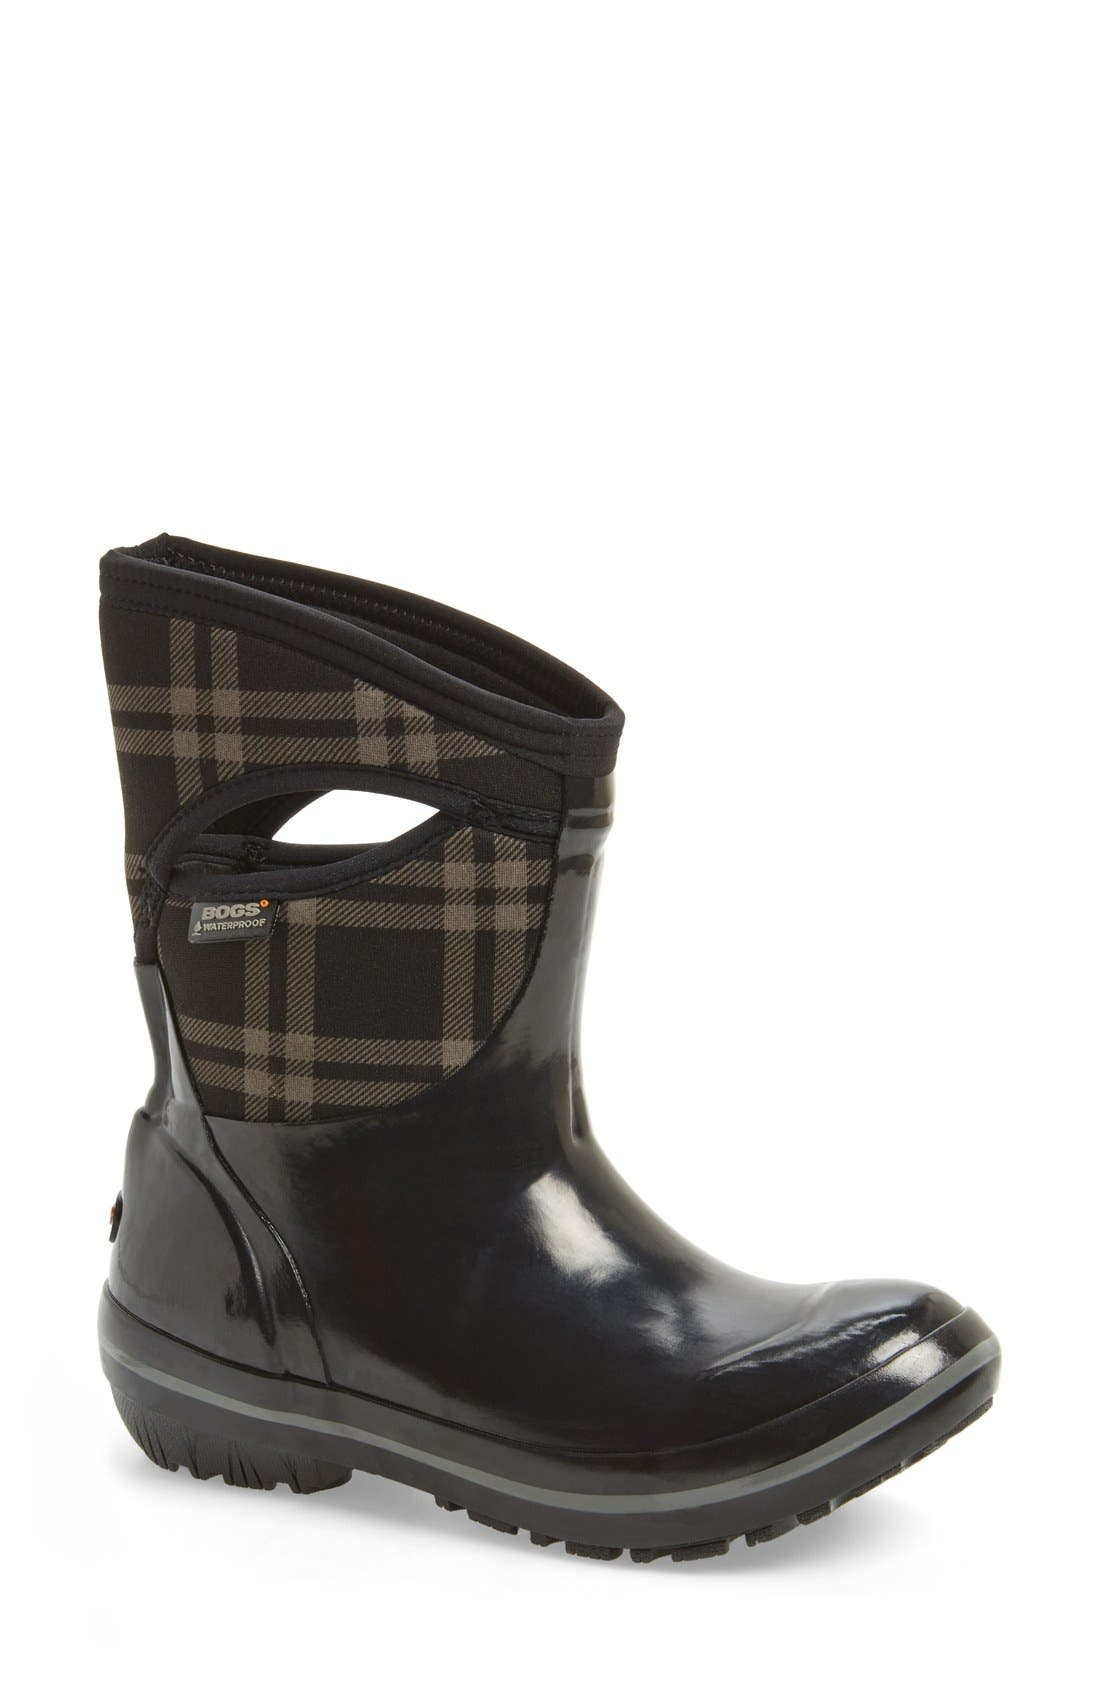 BOGS 'Plimsoll Plaid' Mid Waterproof Snow Boot